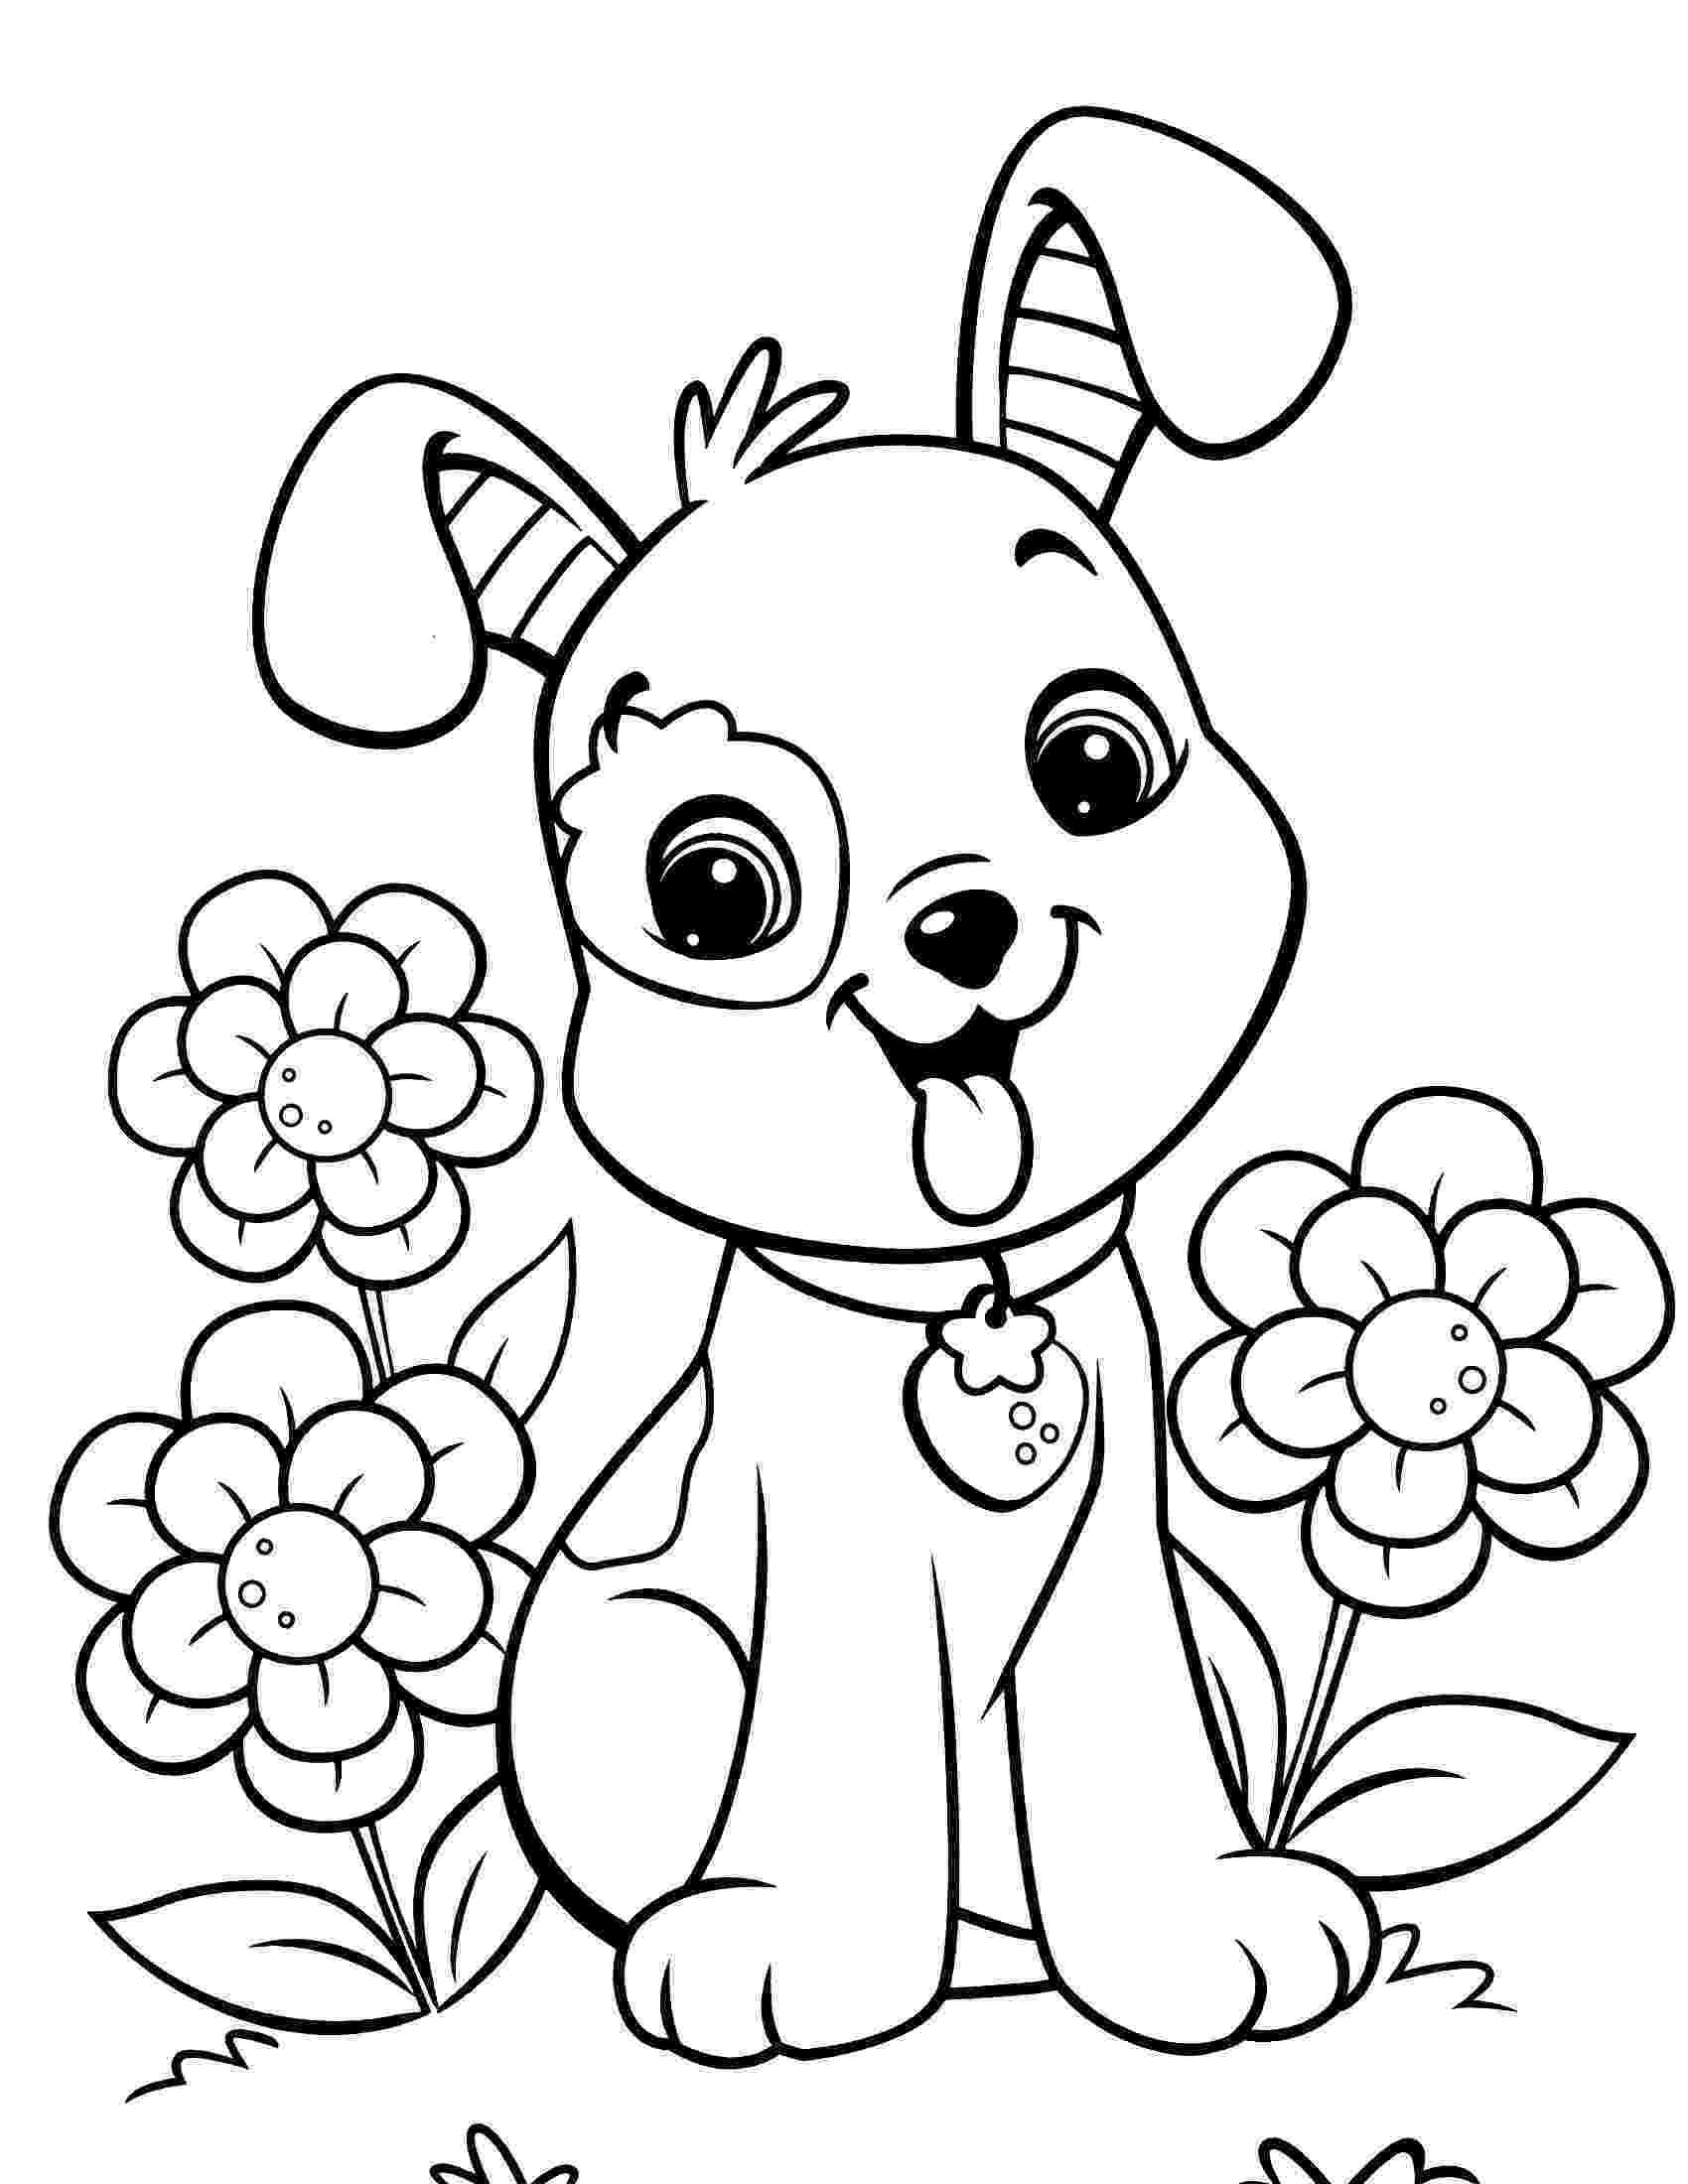 dog colouring pages free printable dog coloring pages for kids pages dog colouring 1 2